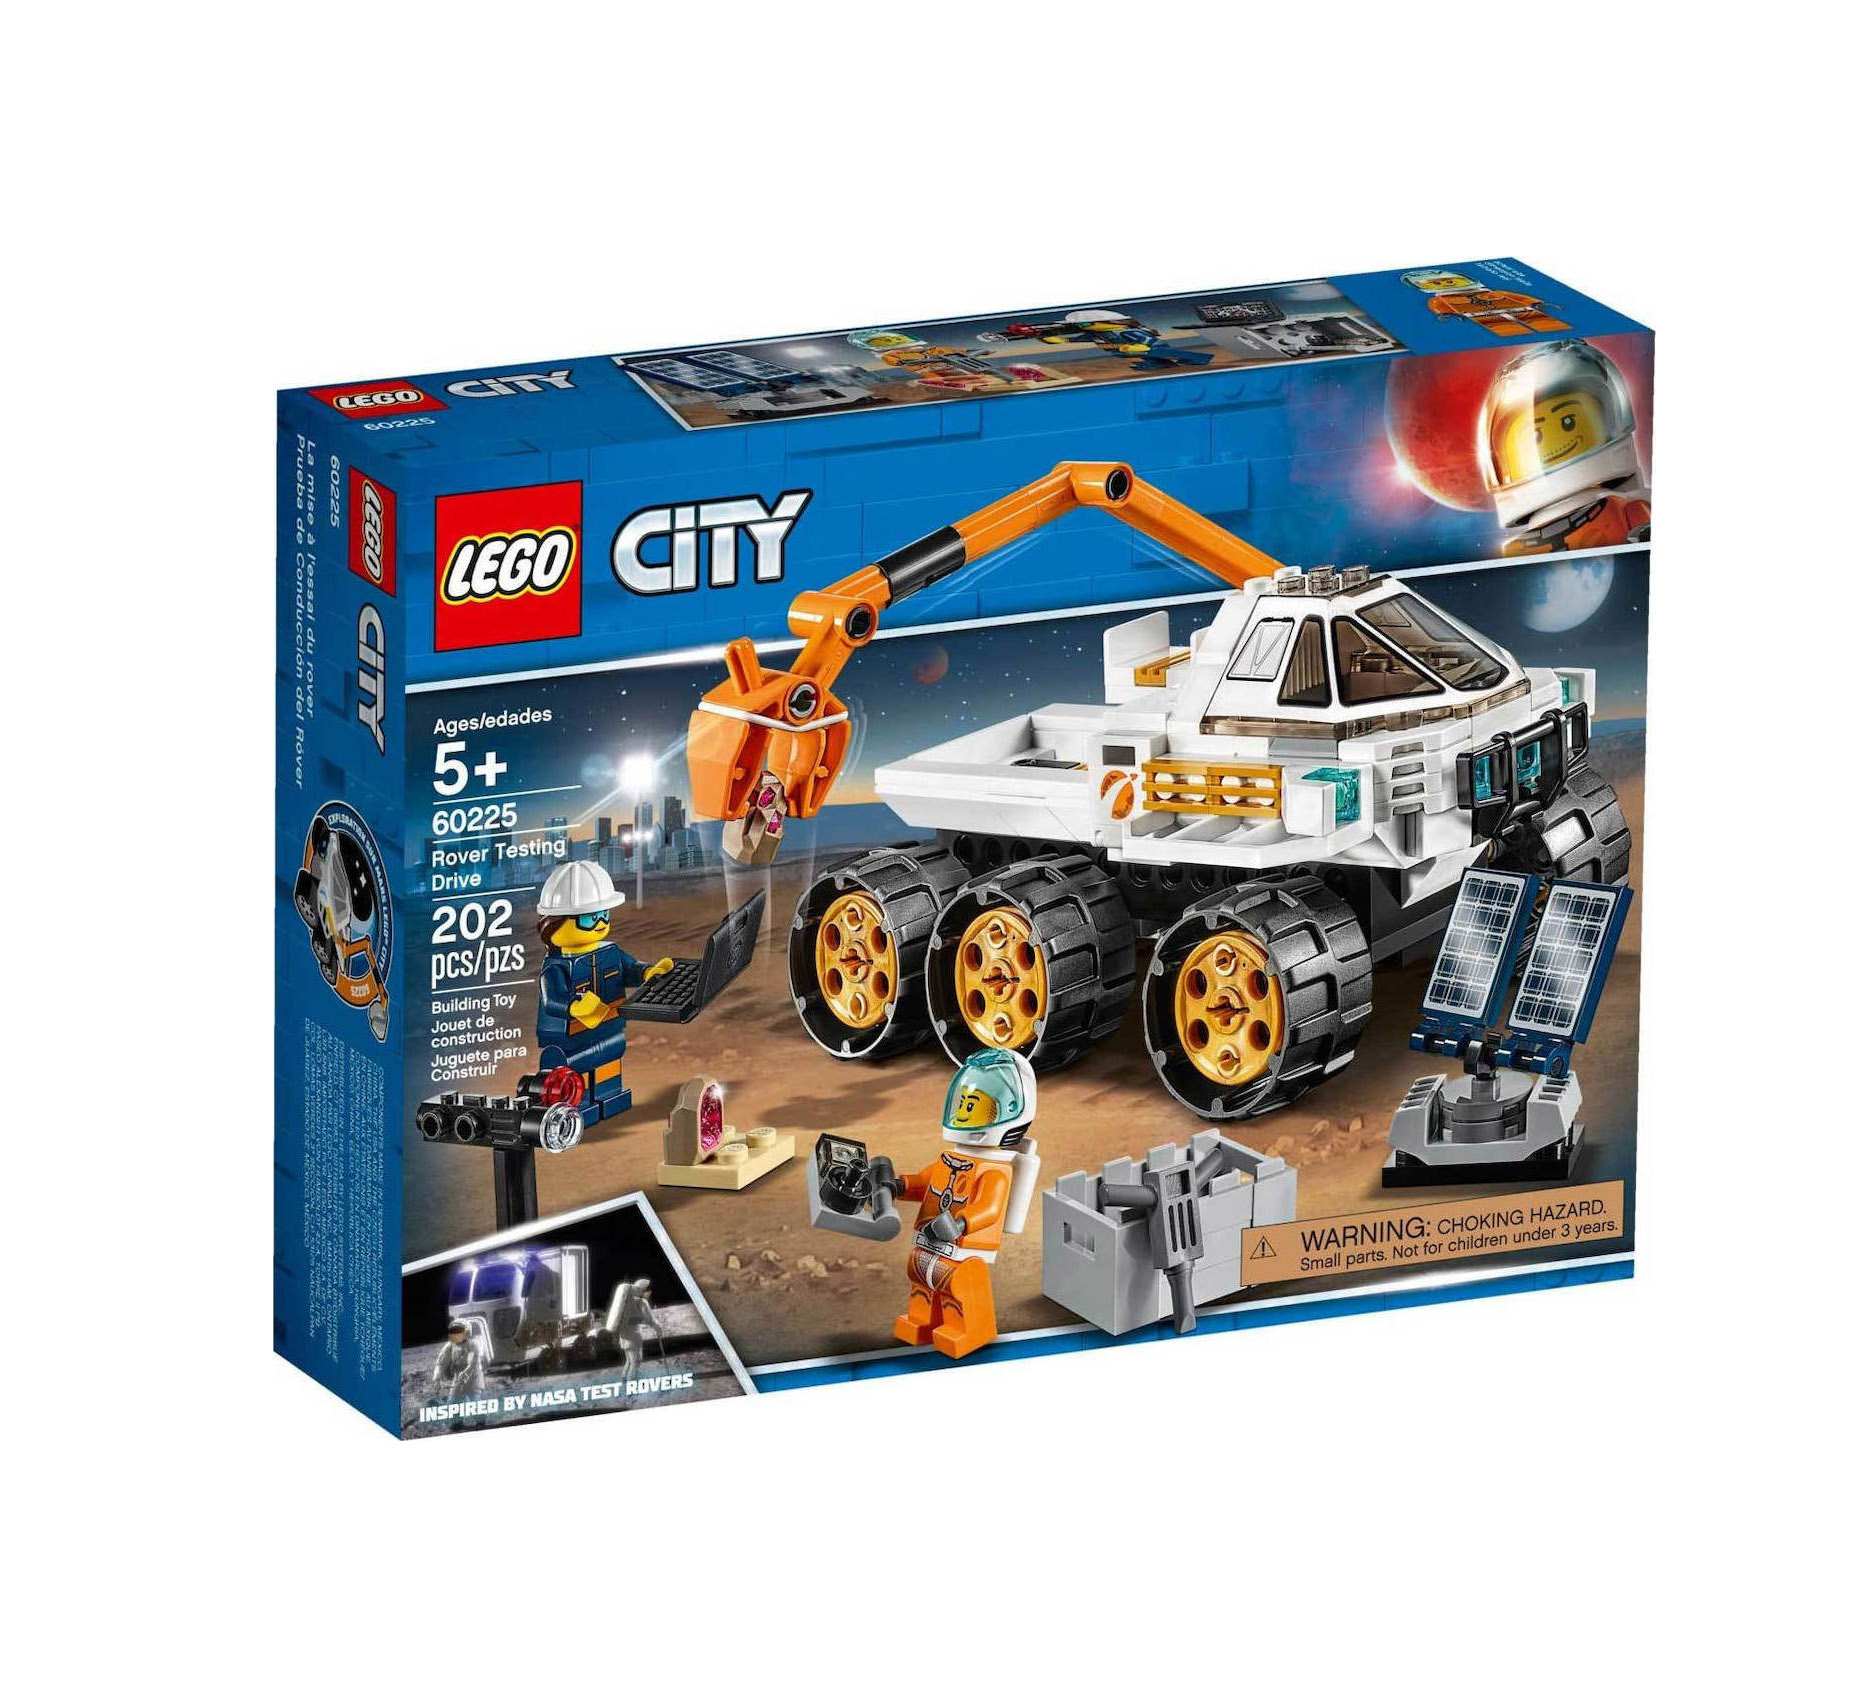 Lego City: Rover Testing Drive 60225